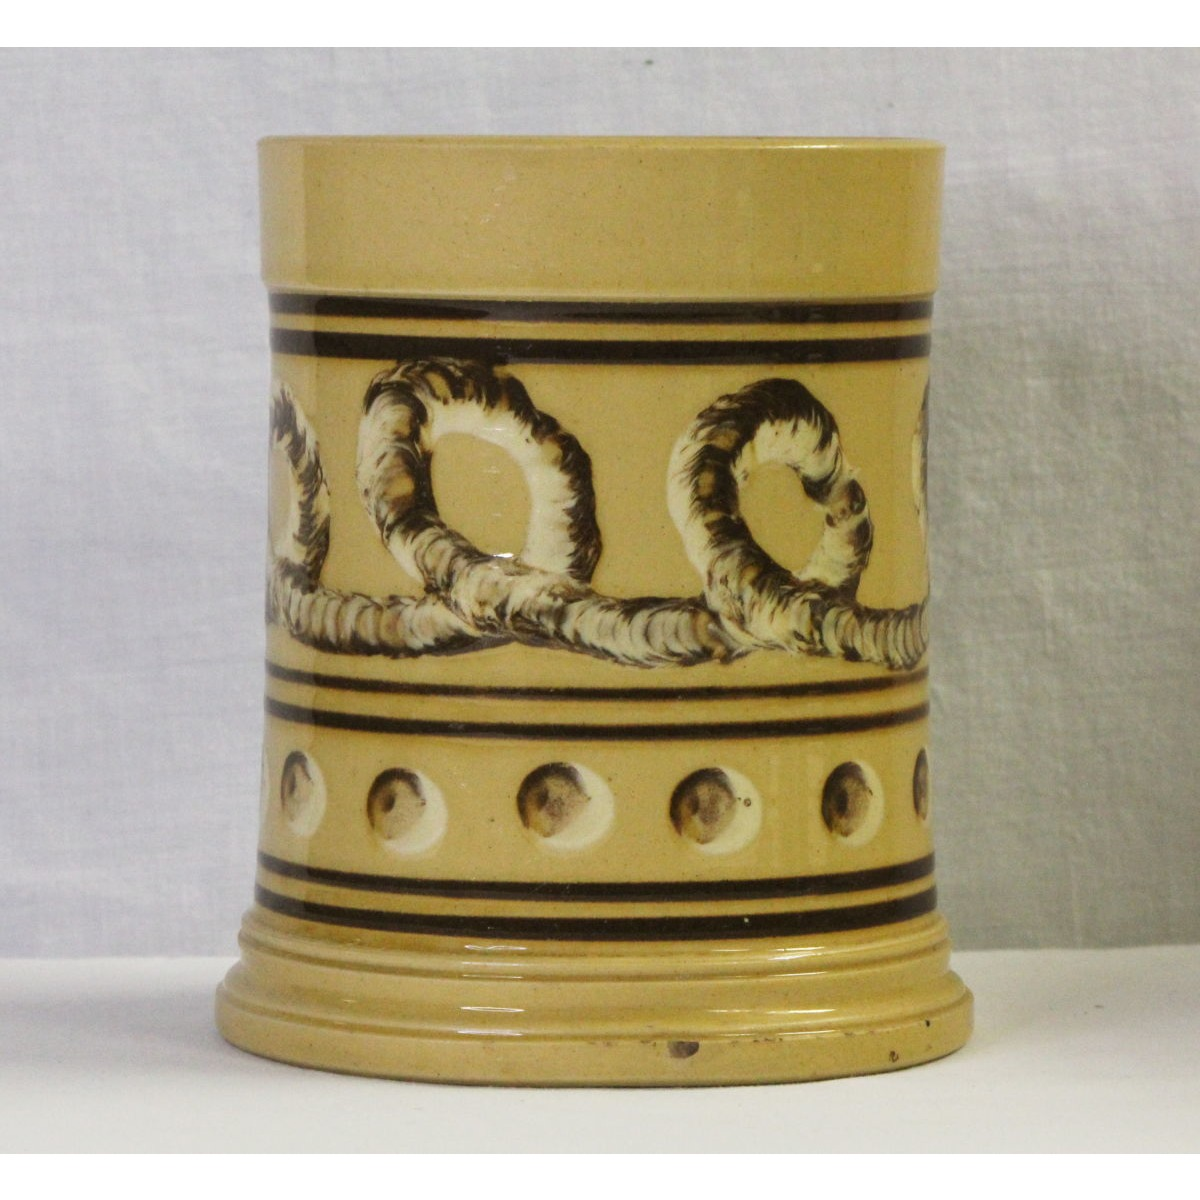 Extremely Rare Earthworm and Cats's Eye Decorated Yellowware Canister - Rare Form